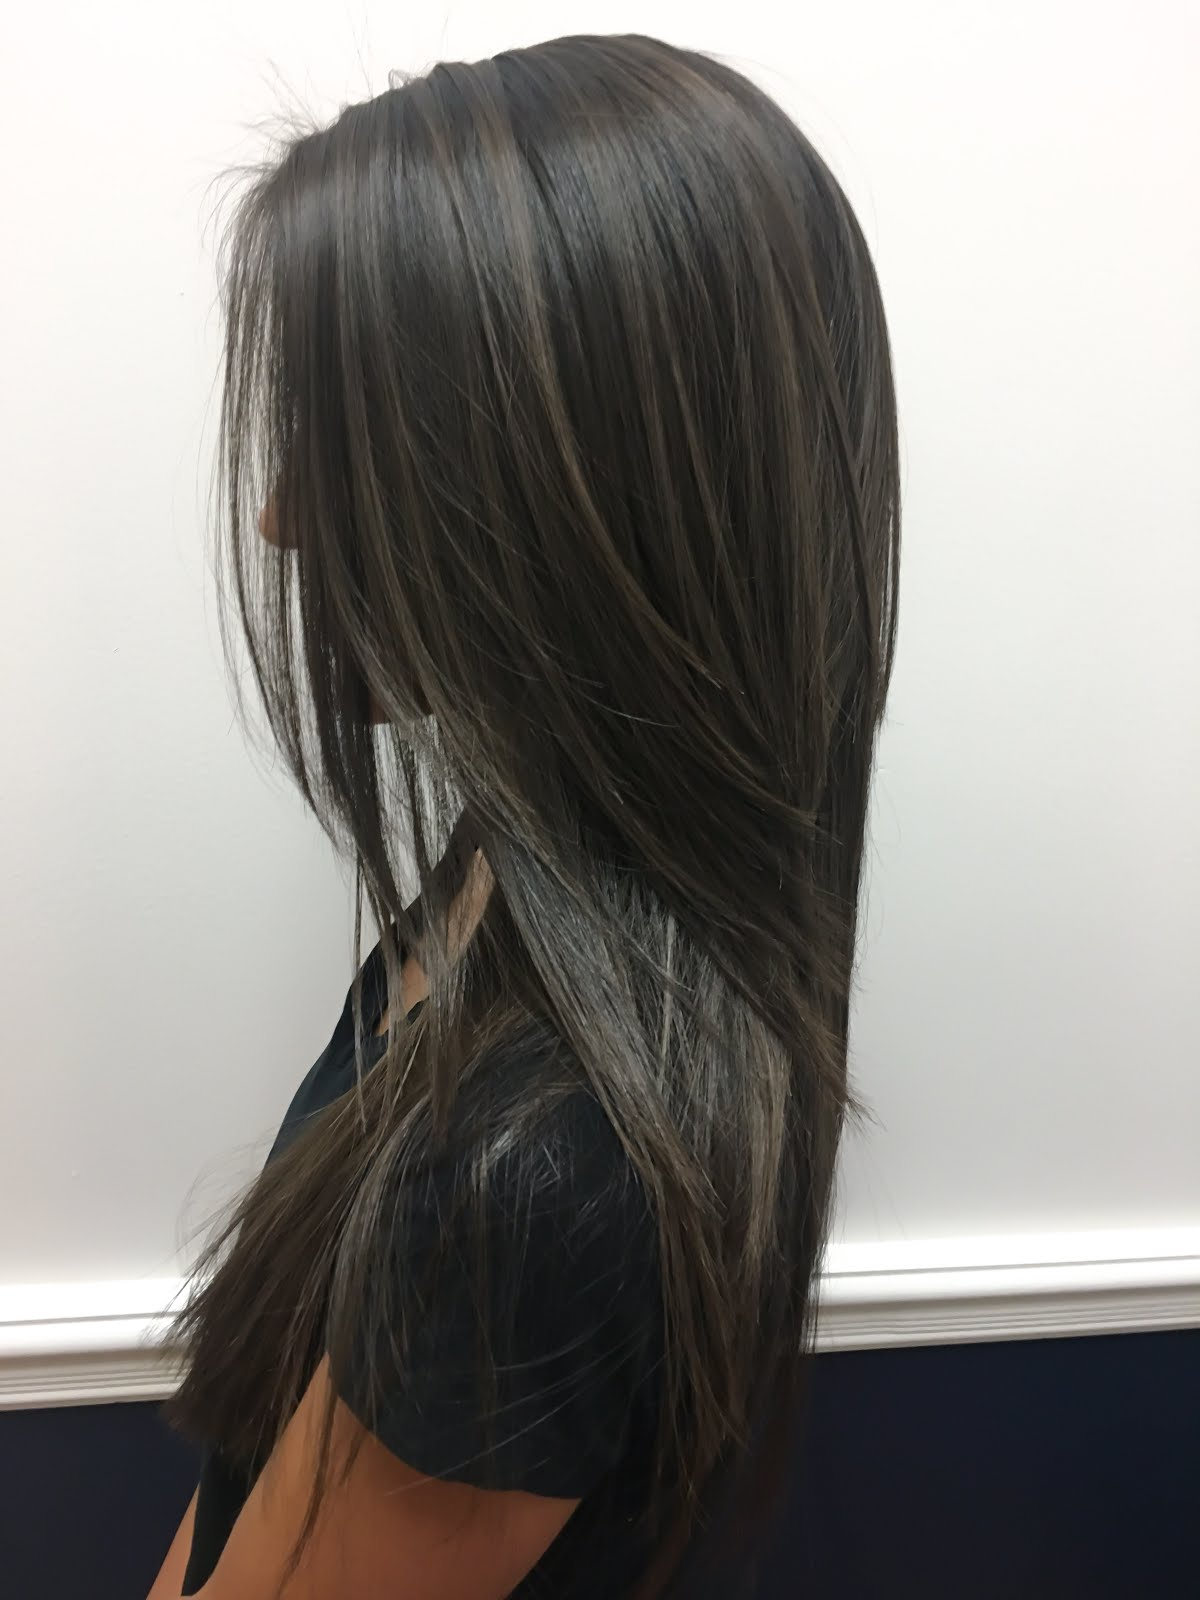 My experience with a Brazilian Blowout | Mr. and Mrs. Powell